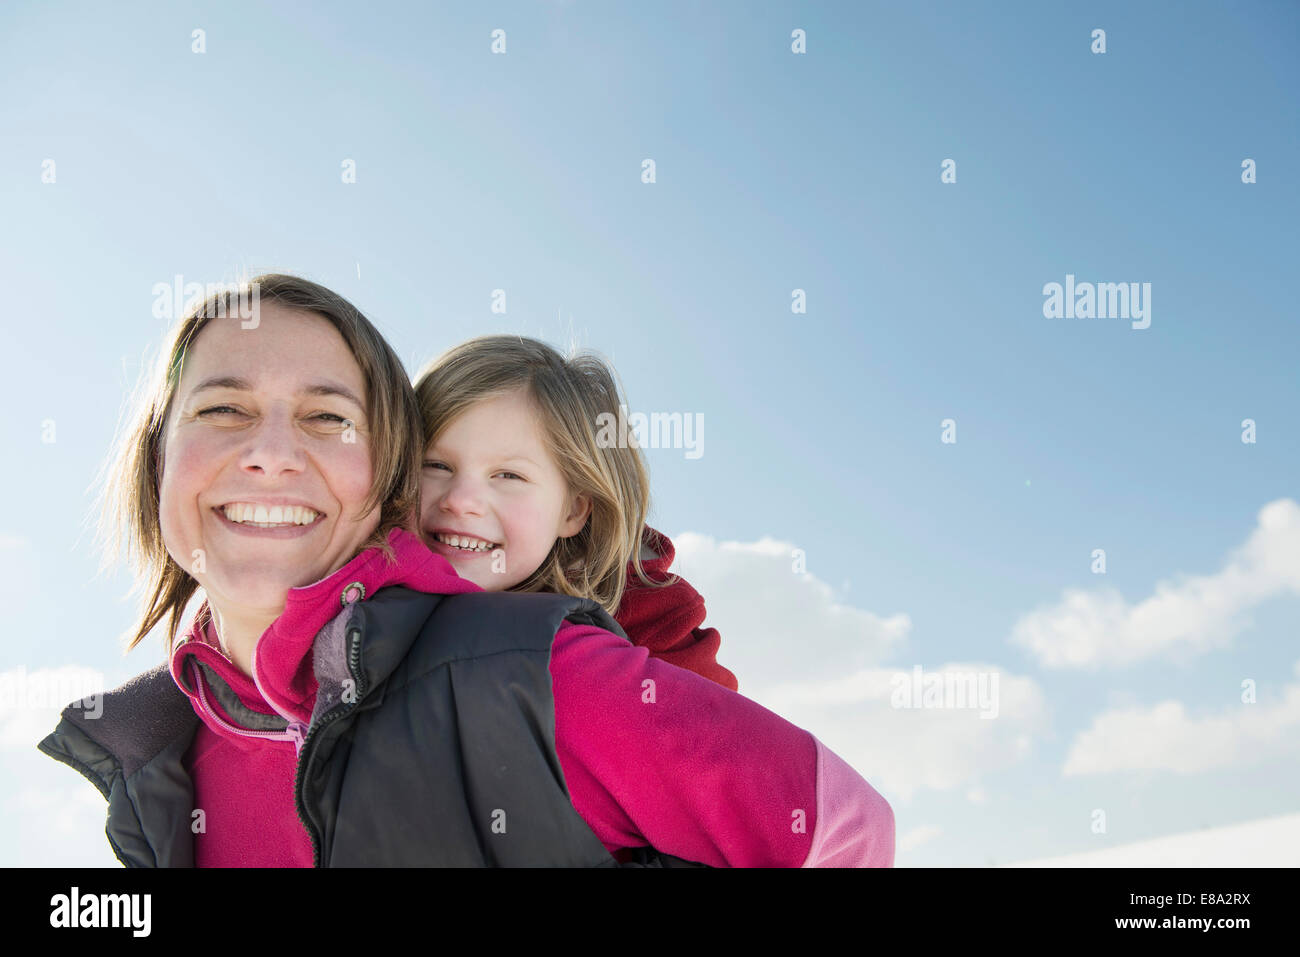 Mother giving piggyback ride to daughter, smiling, Bavaria, Germany - Stock Image